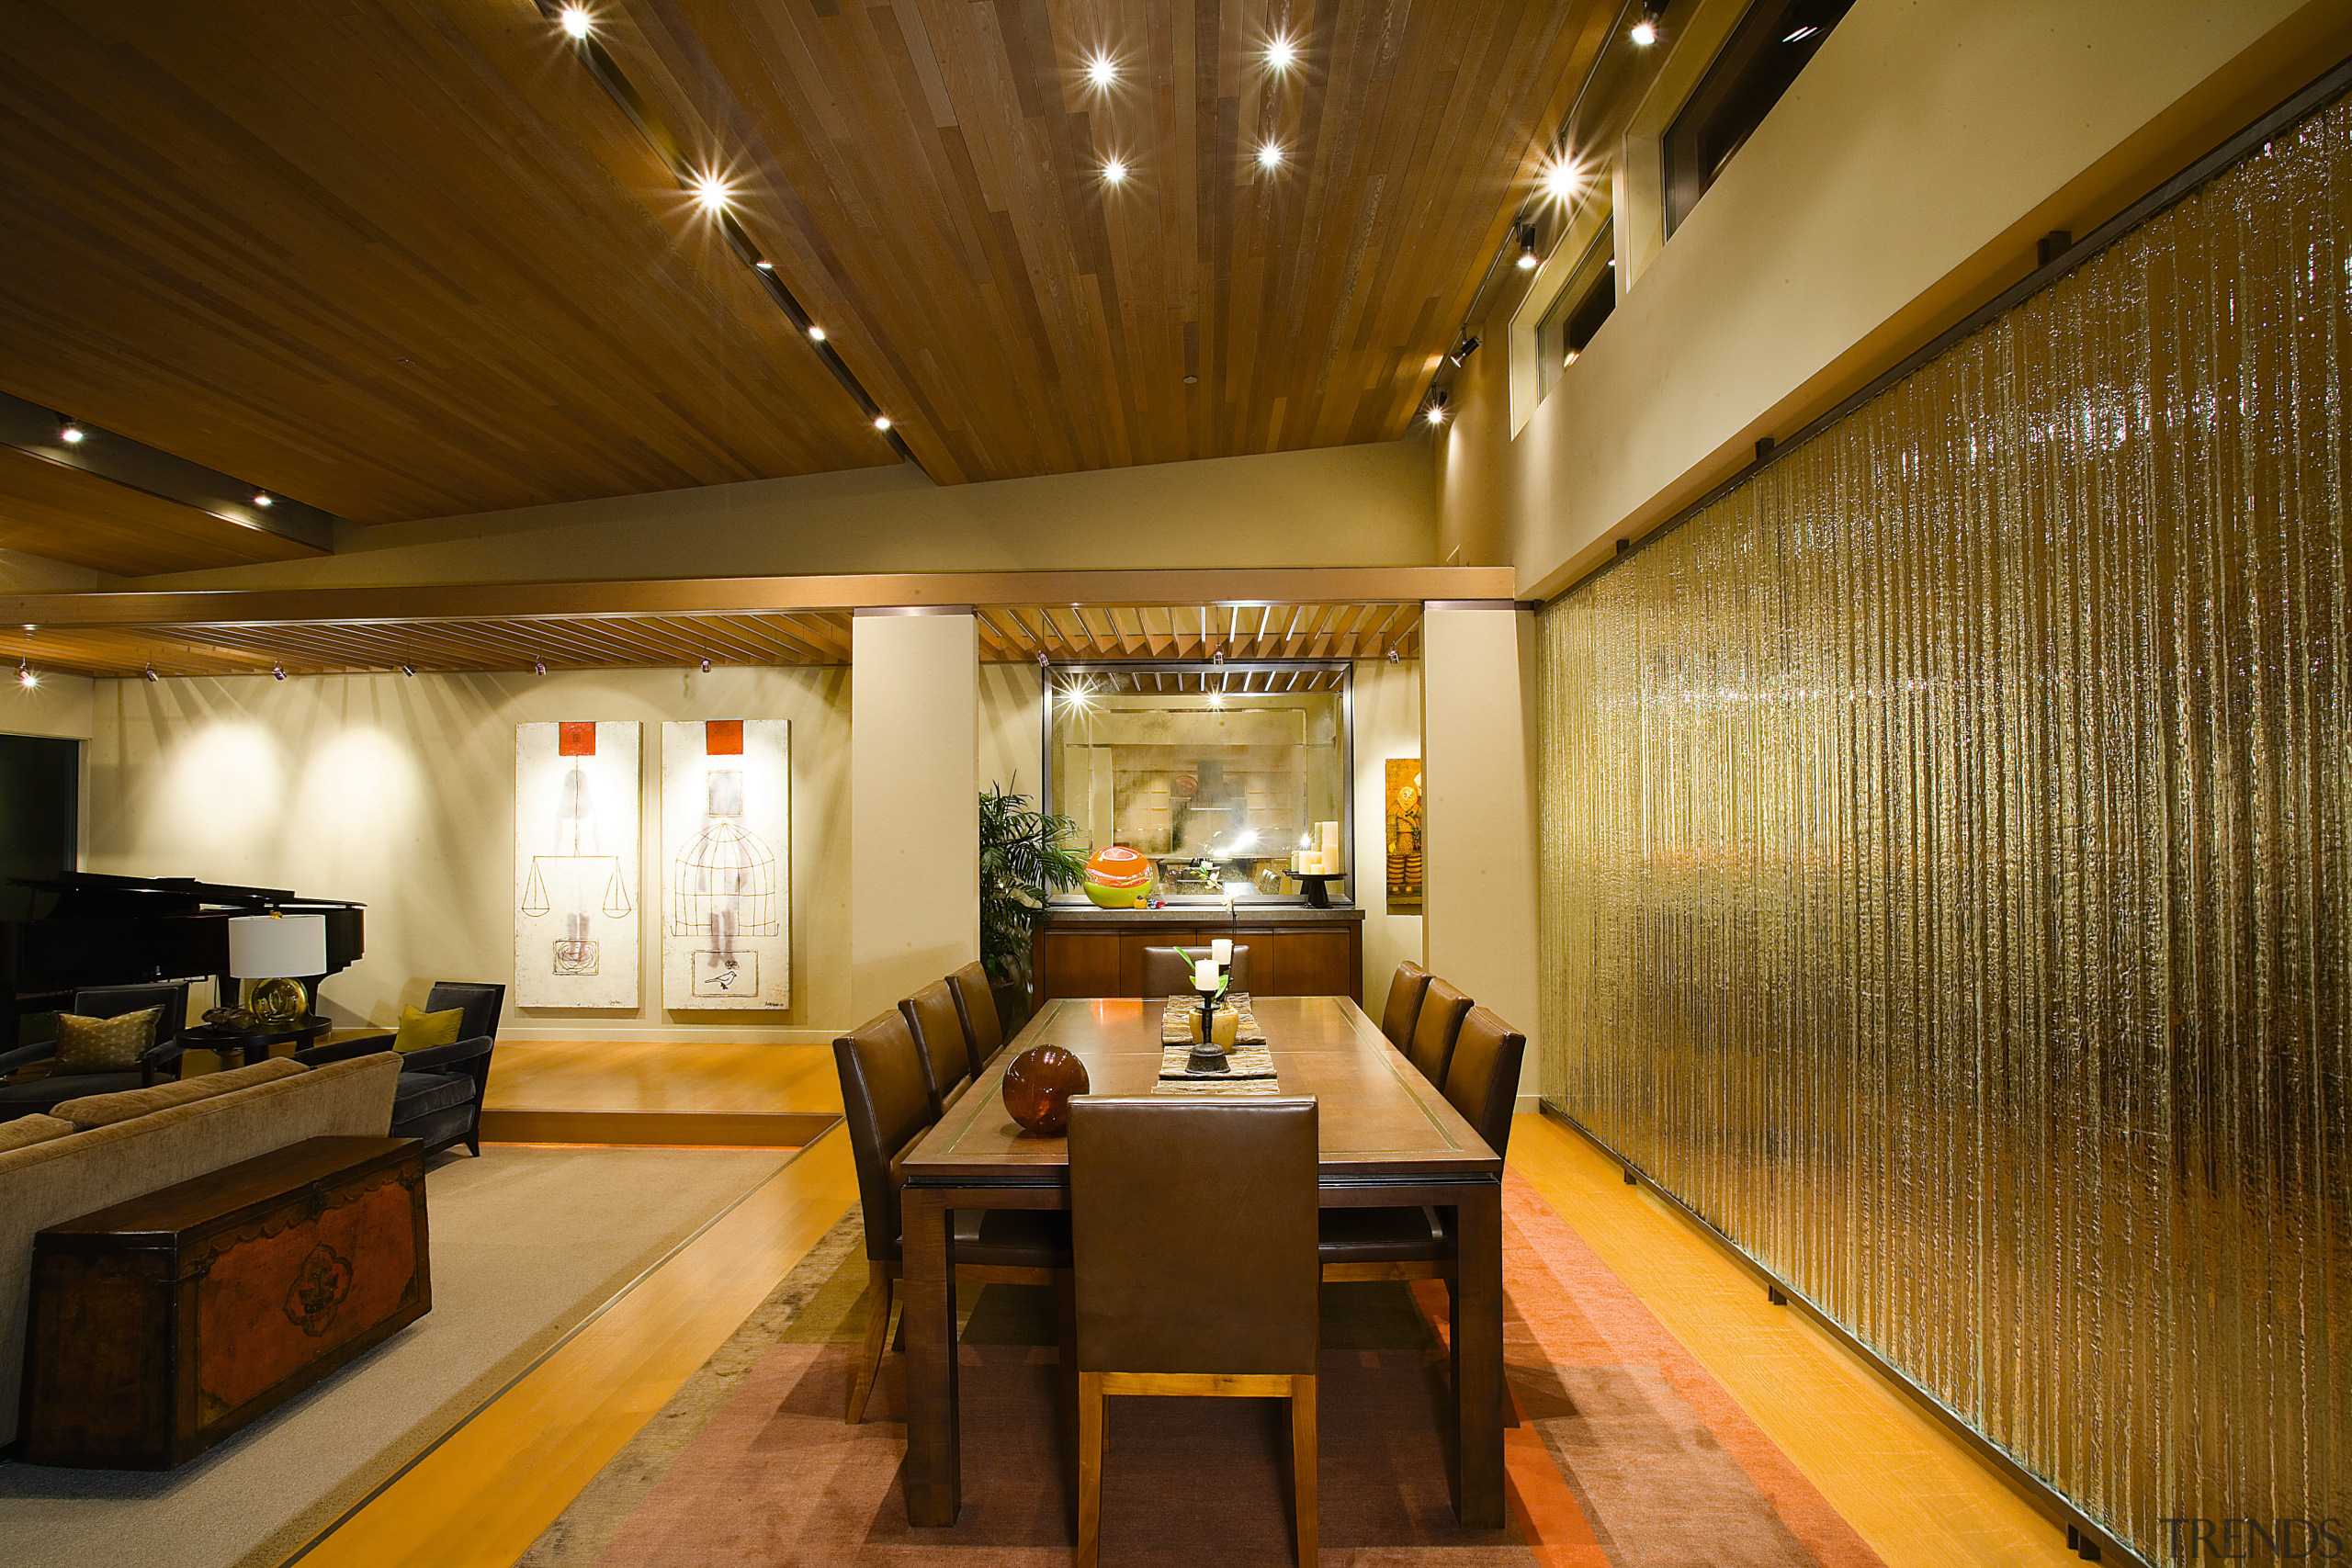 view of the formal dining room featuring timer ceiling, interior design, restaurant, brown